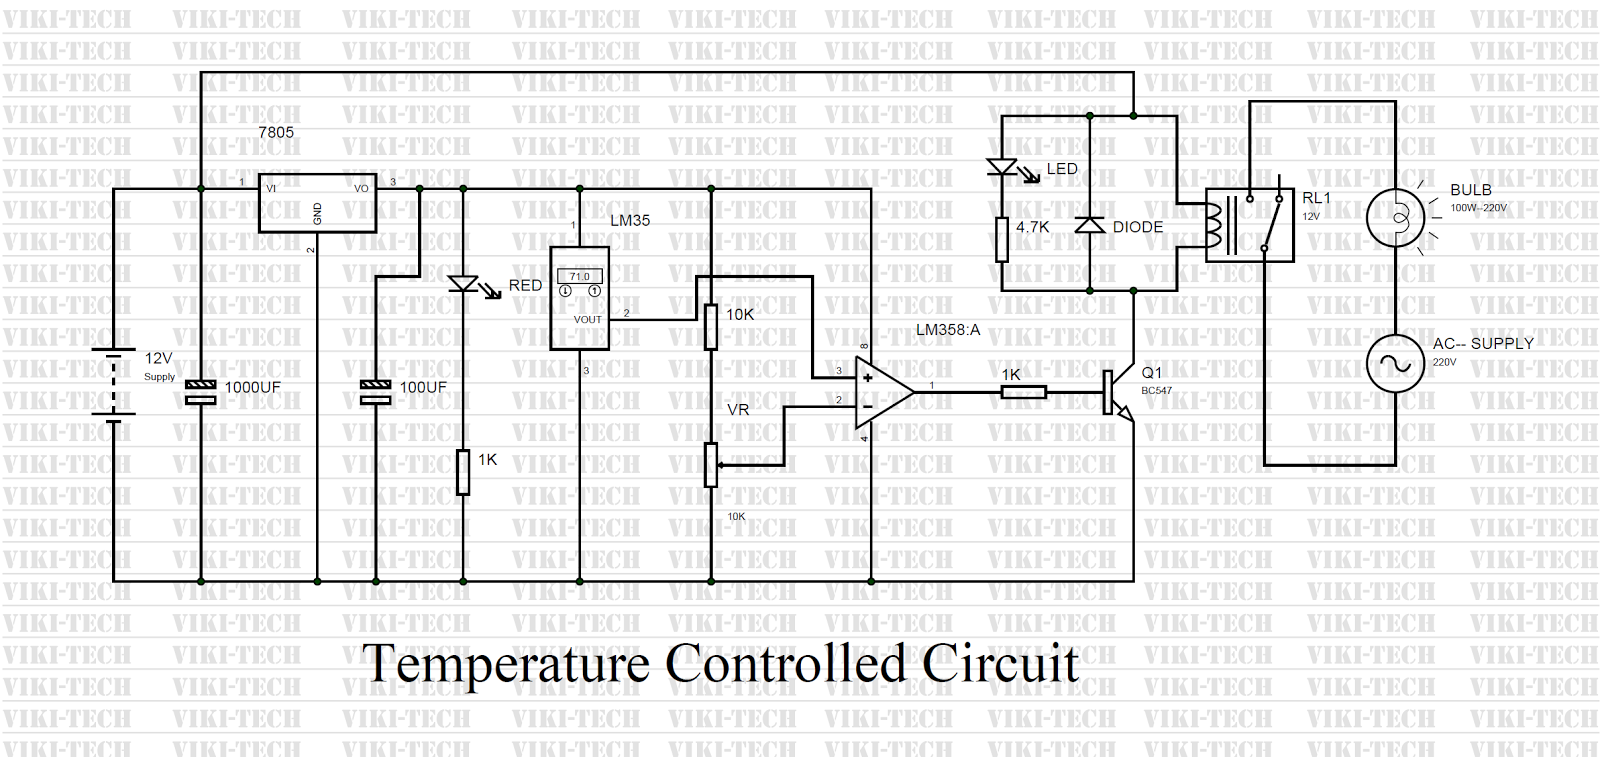 small resolution of temperature controlled circuit diagram